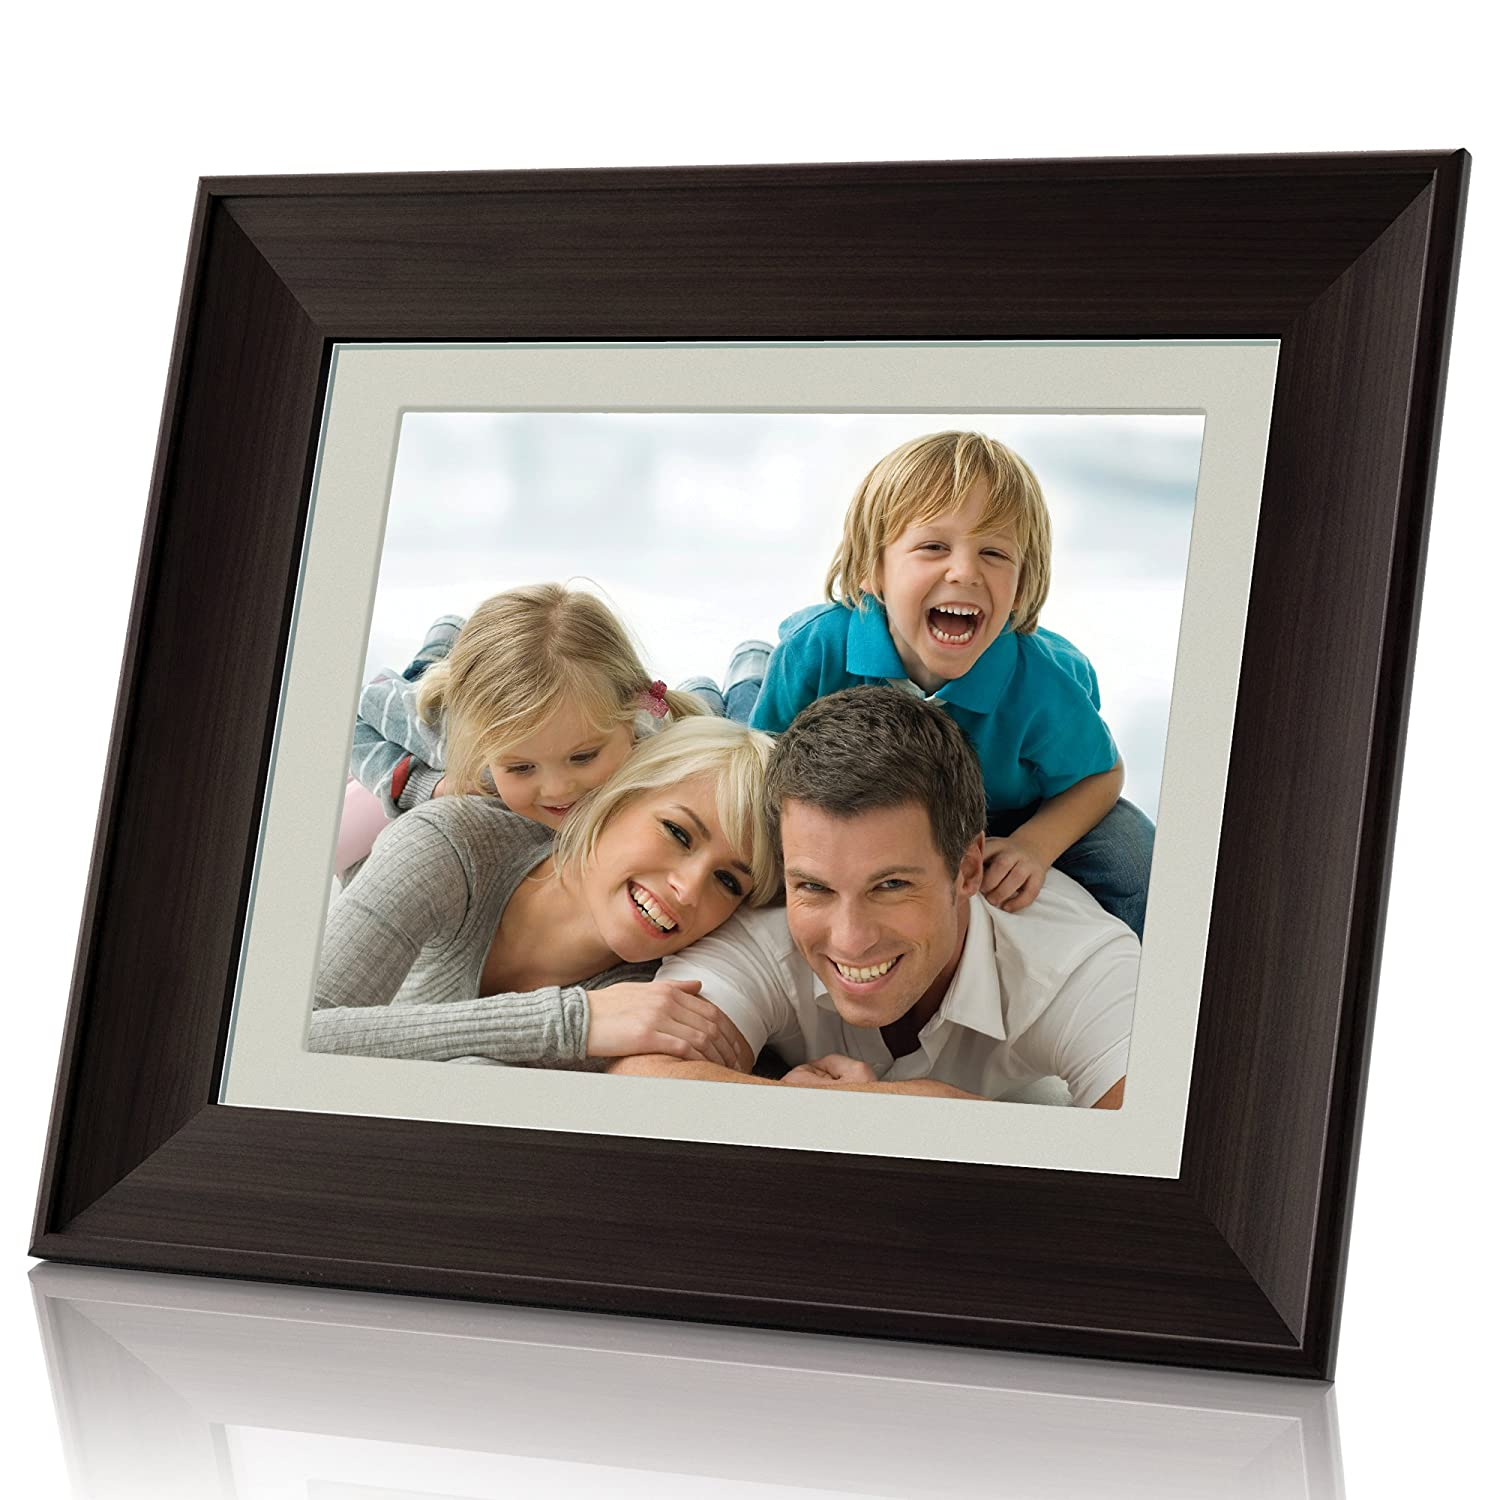 Amazon.com : Coby DP862 8-Inch Digital Picture Frame Wooden : Camera ...